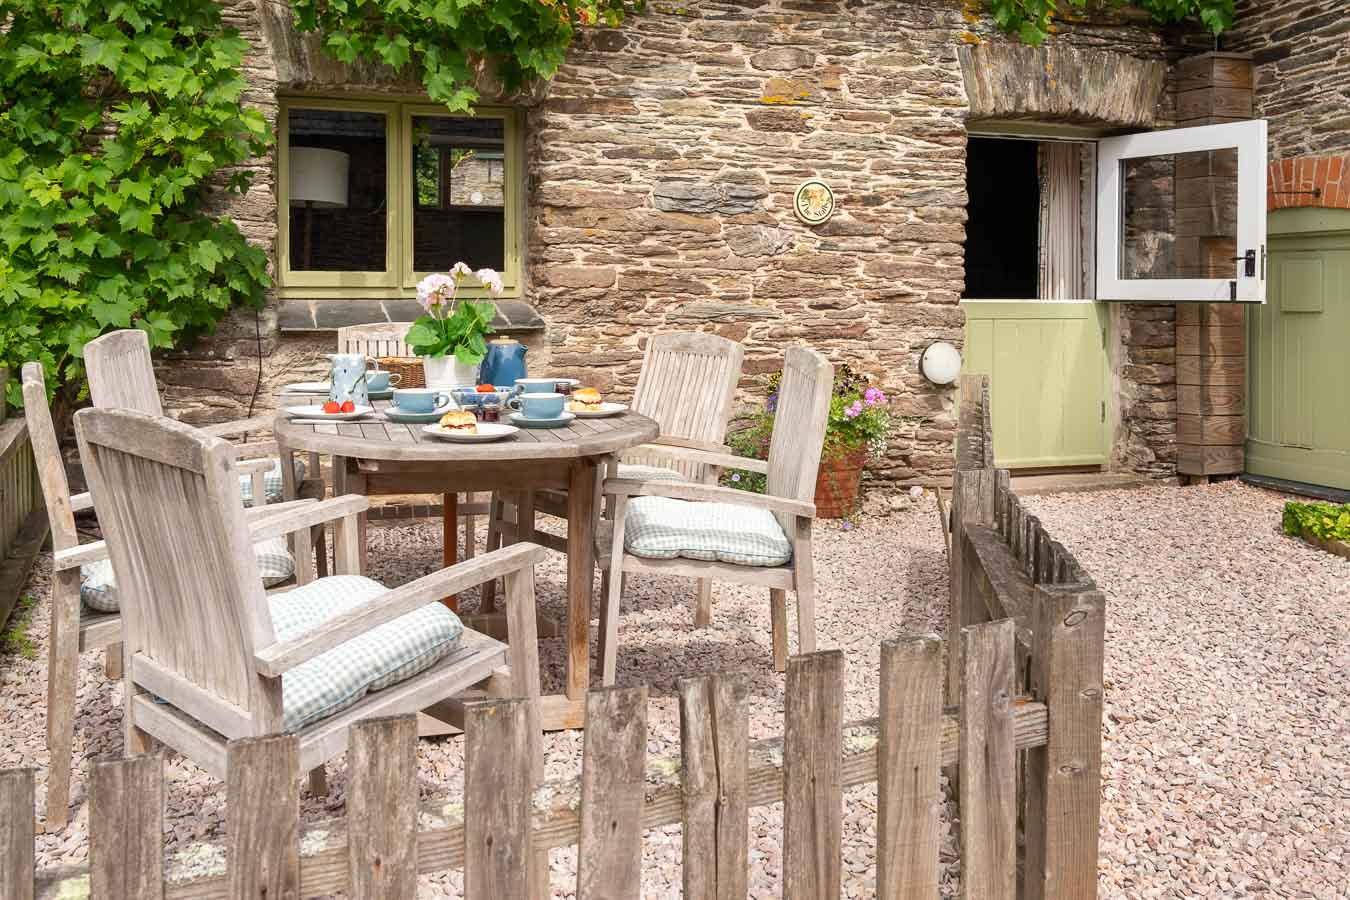 Original stone work and stable door make the Stalls cottage a wonderful holiday home at Flear Farm, Devon.